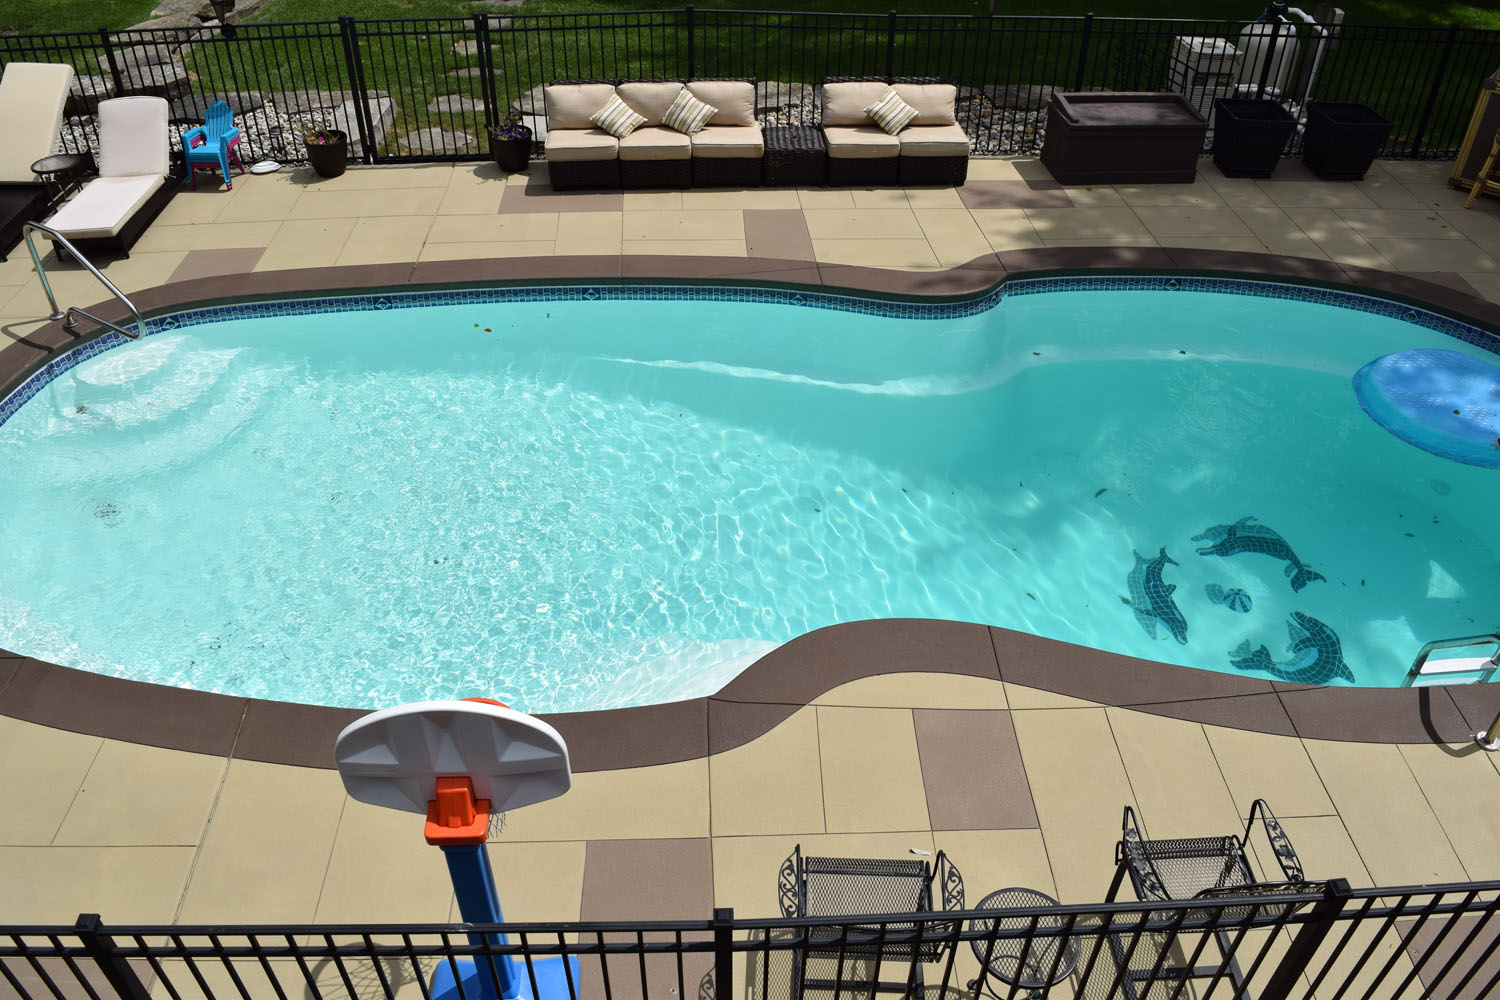 Residential Pool Deck Cement Overlay.  Brickform SM Pro, Liquid Color, and Gemseal